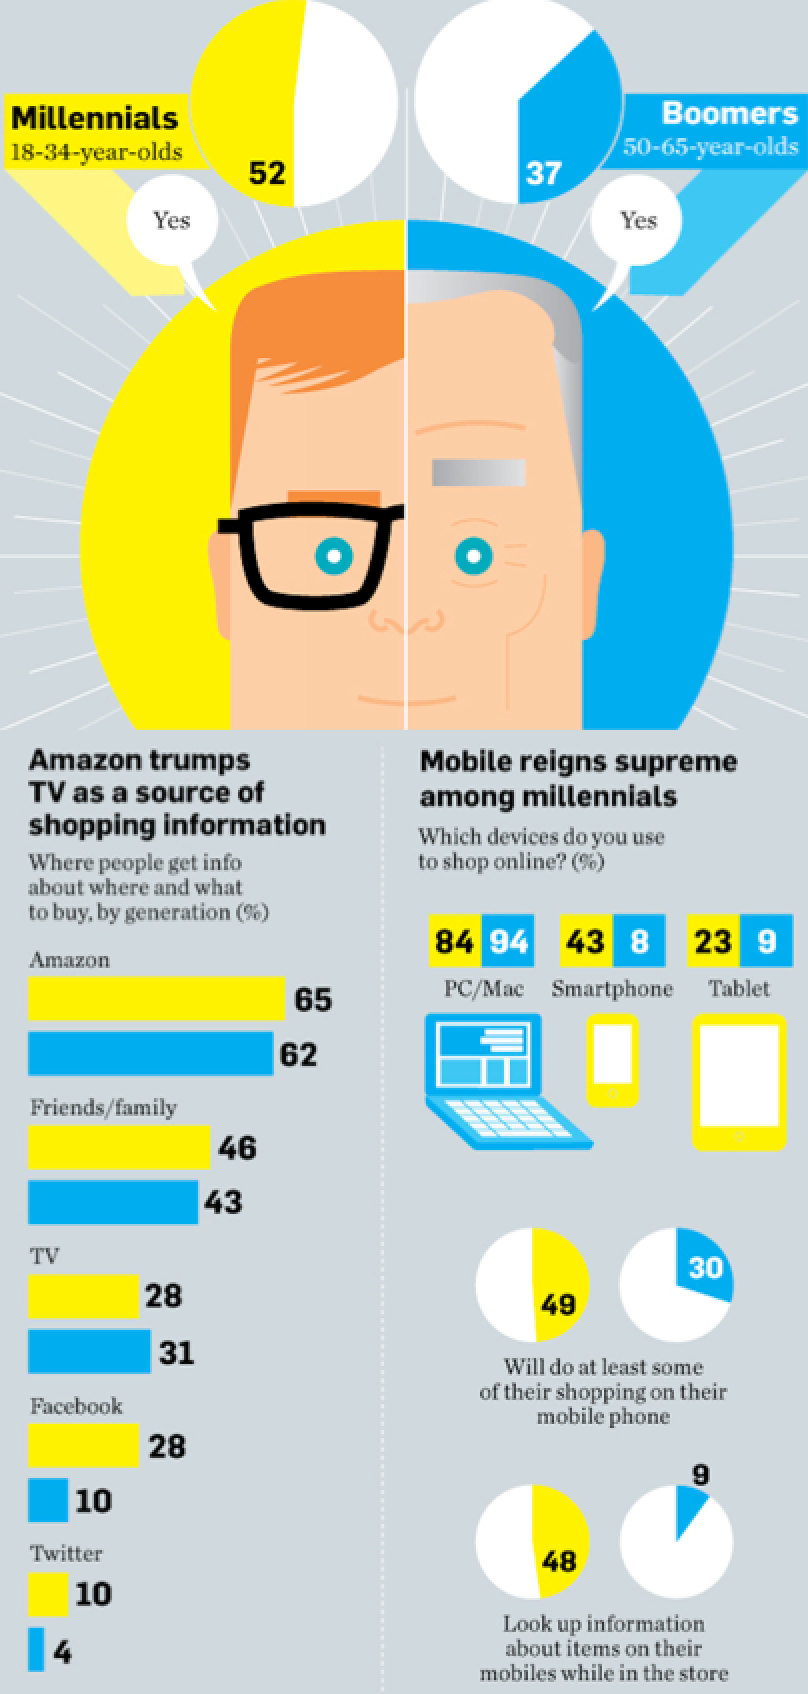 Mobilizing Shoppers™ – Millennial shoppers are mobilizing! They are omnichannel digital shoppers - online, smartphone & tablet. #mobilizingshoppers #mobilemarketing  Source: Horizon Media Holiday Shopper Survey 2013